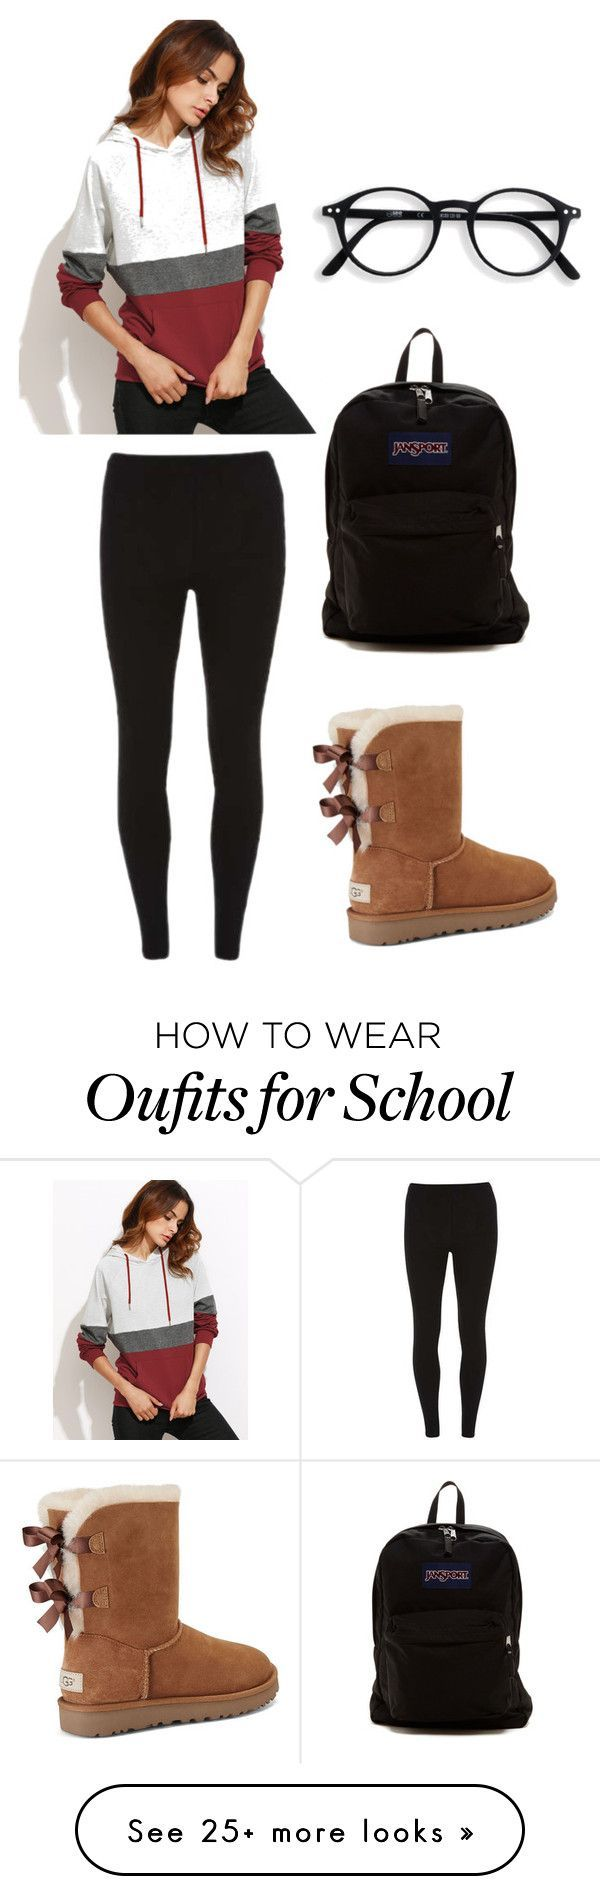 """Comfy school outfit"" by tatis-vanoy on Polyvore featuring UGG, Dorothy Perkins and JanSport"